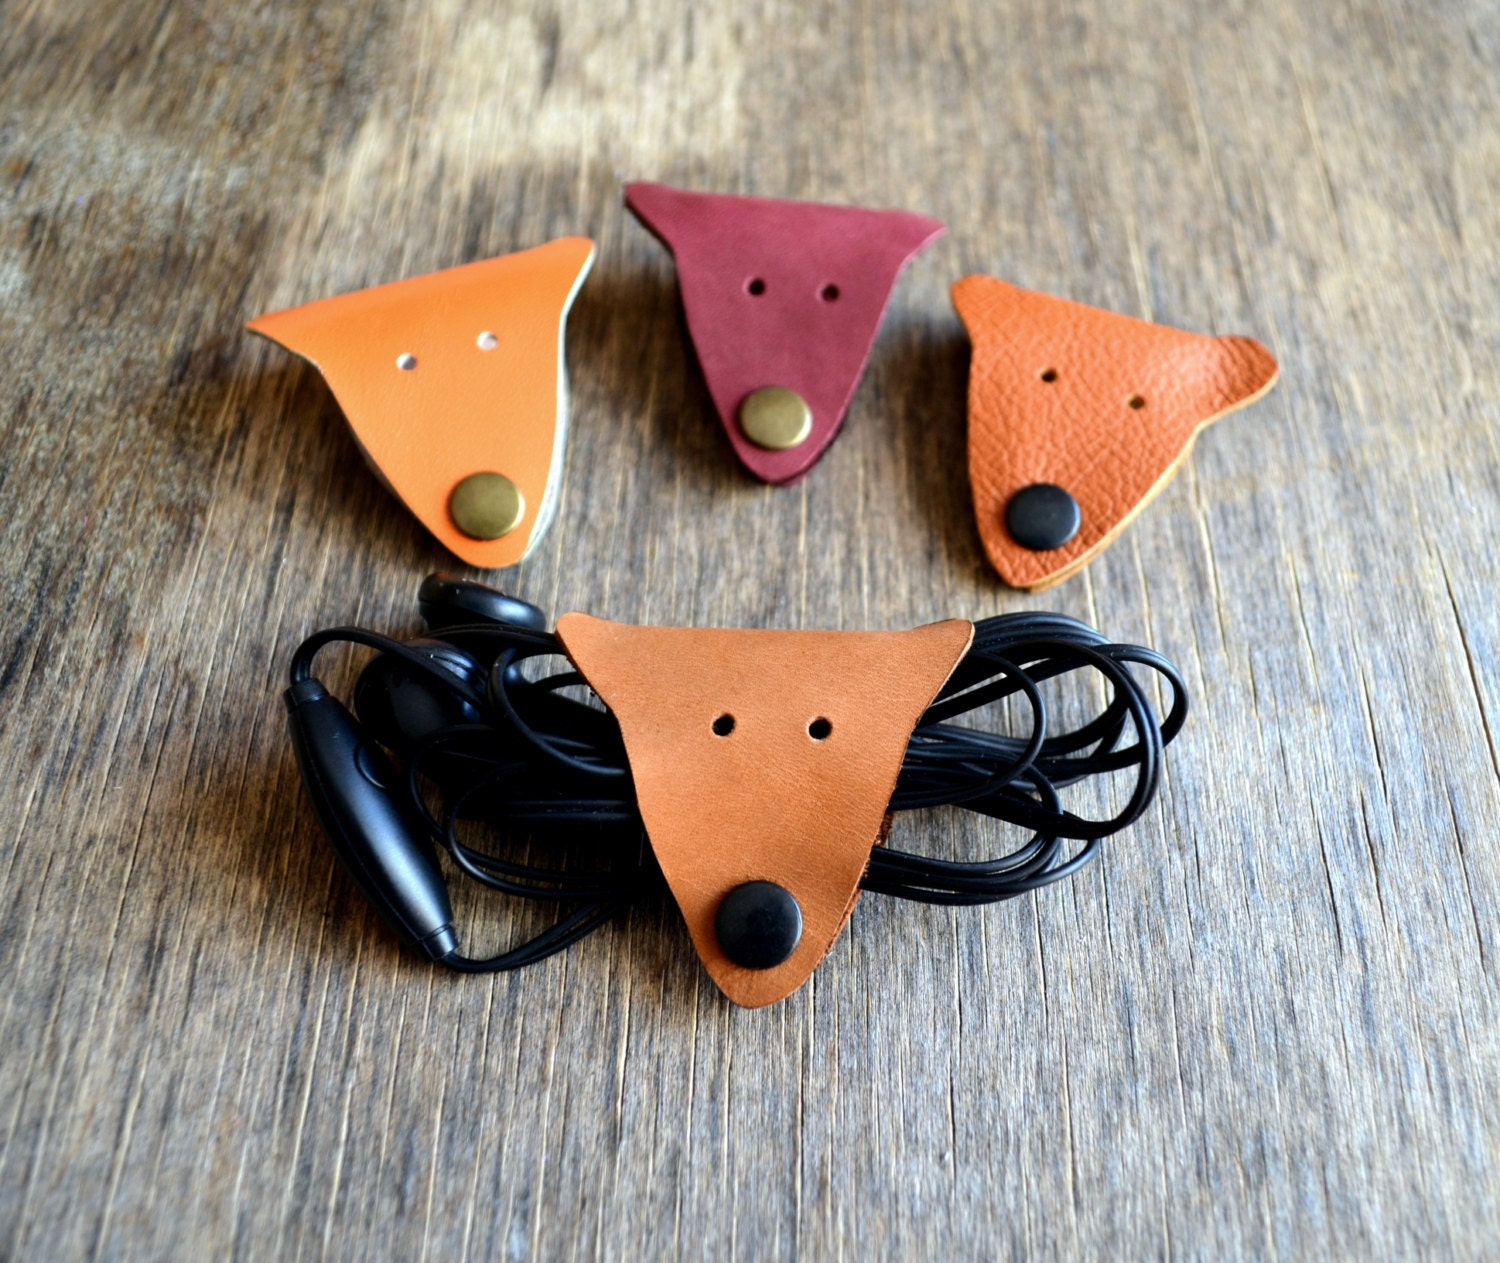 Cord Holders: Cord Holder Fox Cord Organizer Fox Earbud Holder Leather Cable